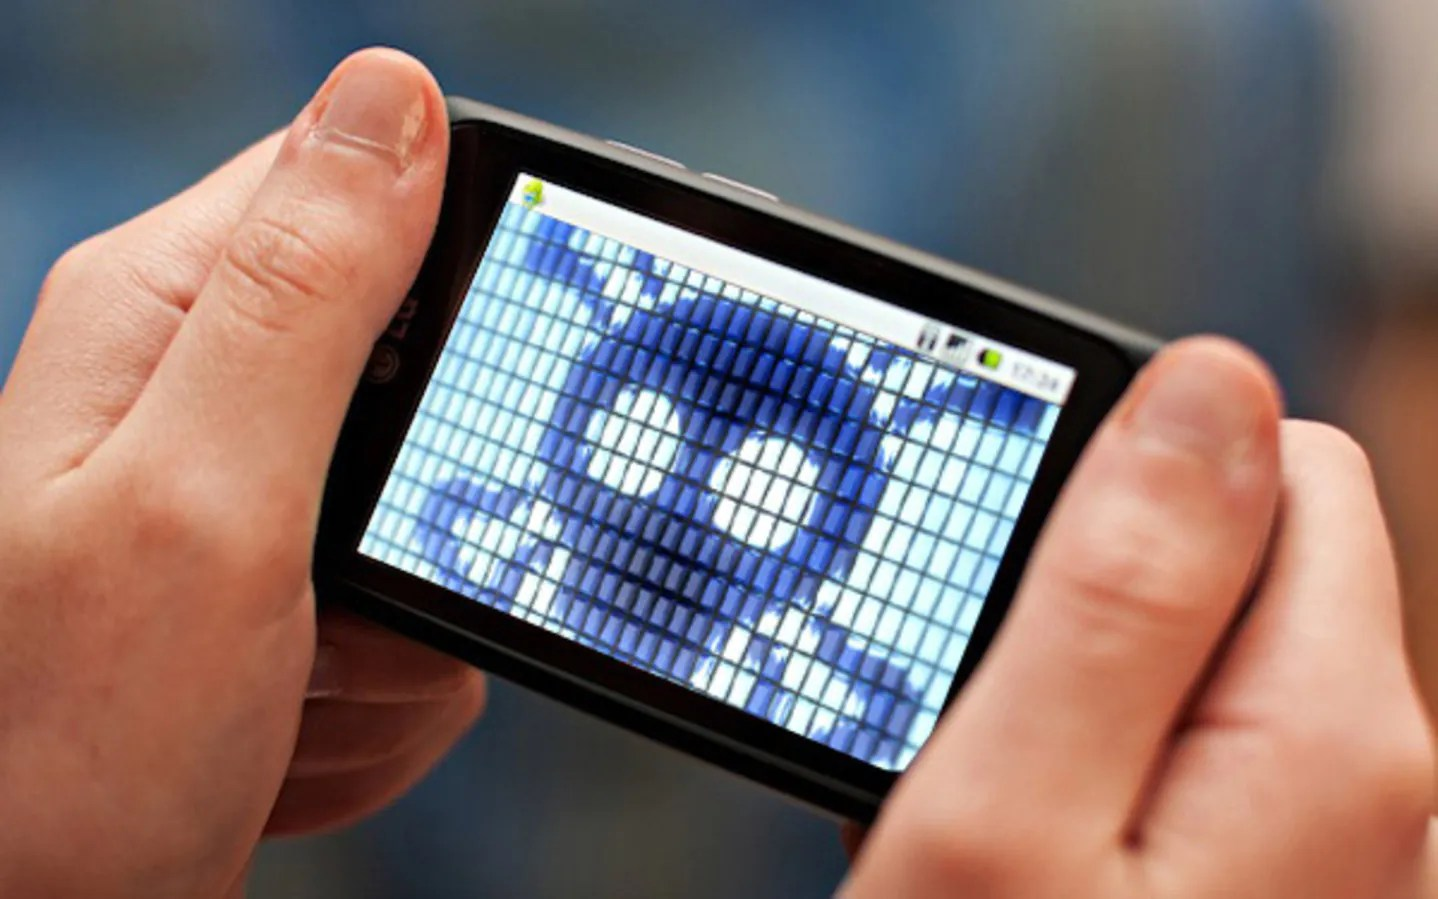 Popular CamScanner app for Android infected with nasty malware